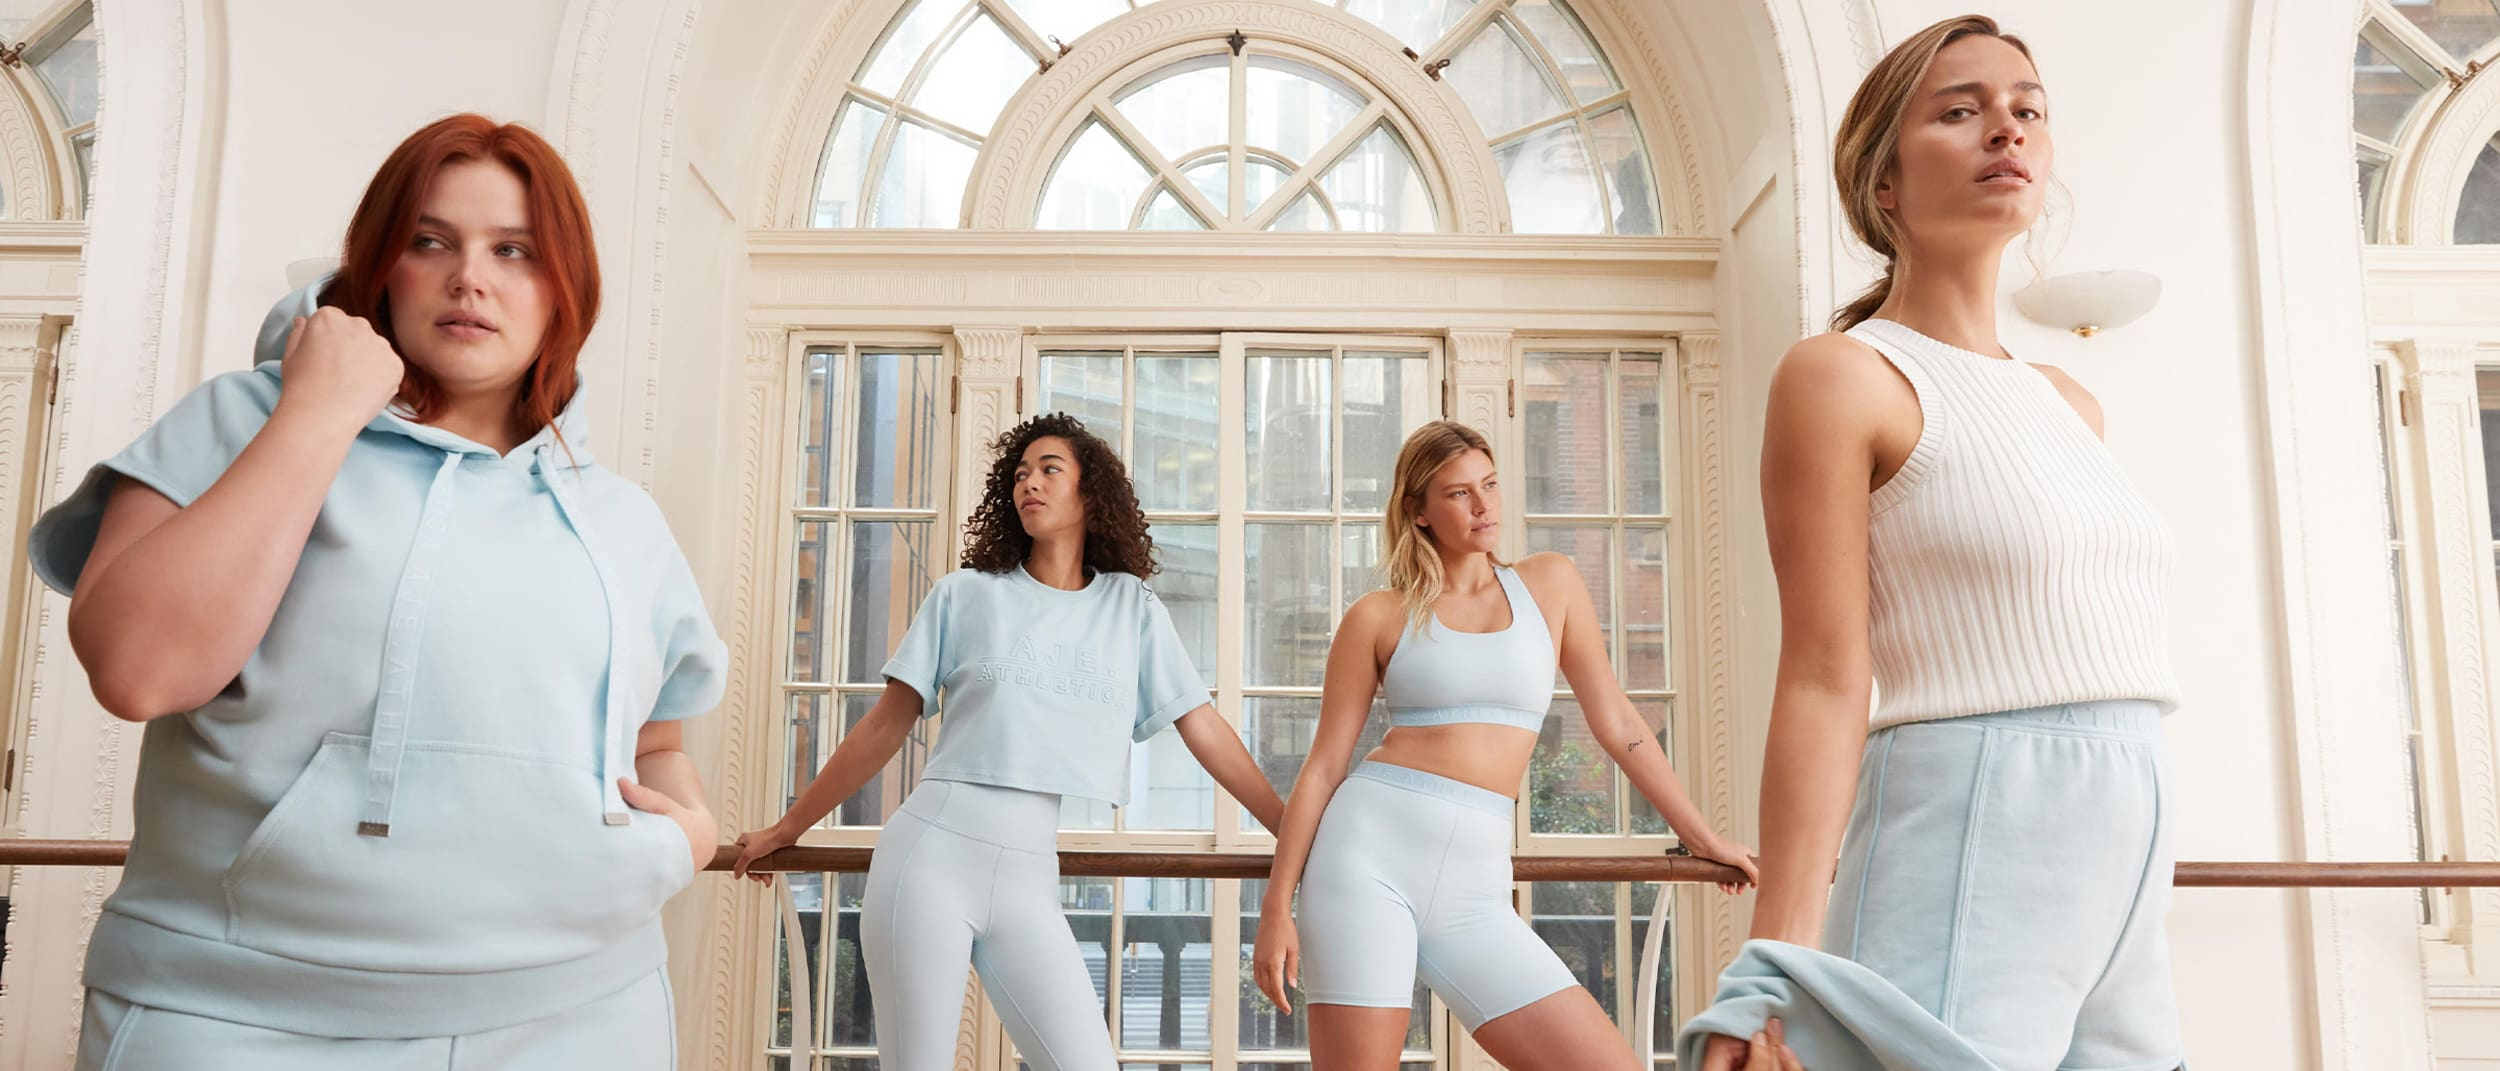 Aje: AJE ATHLETICA collection 002 has landed